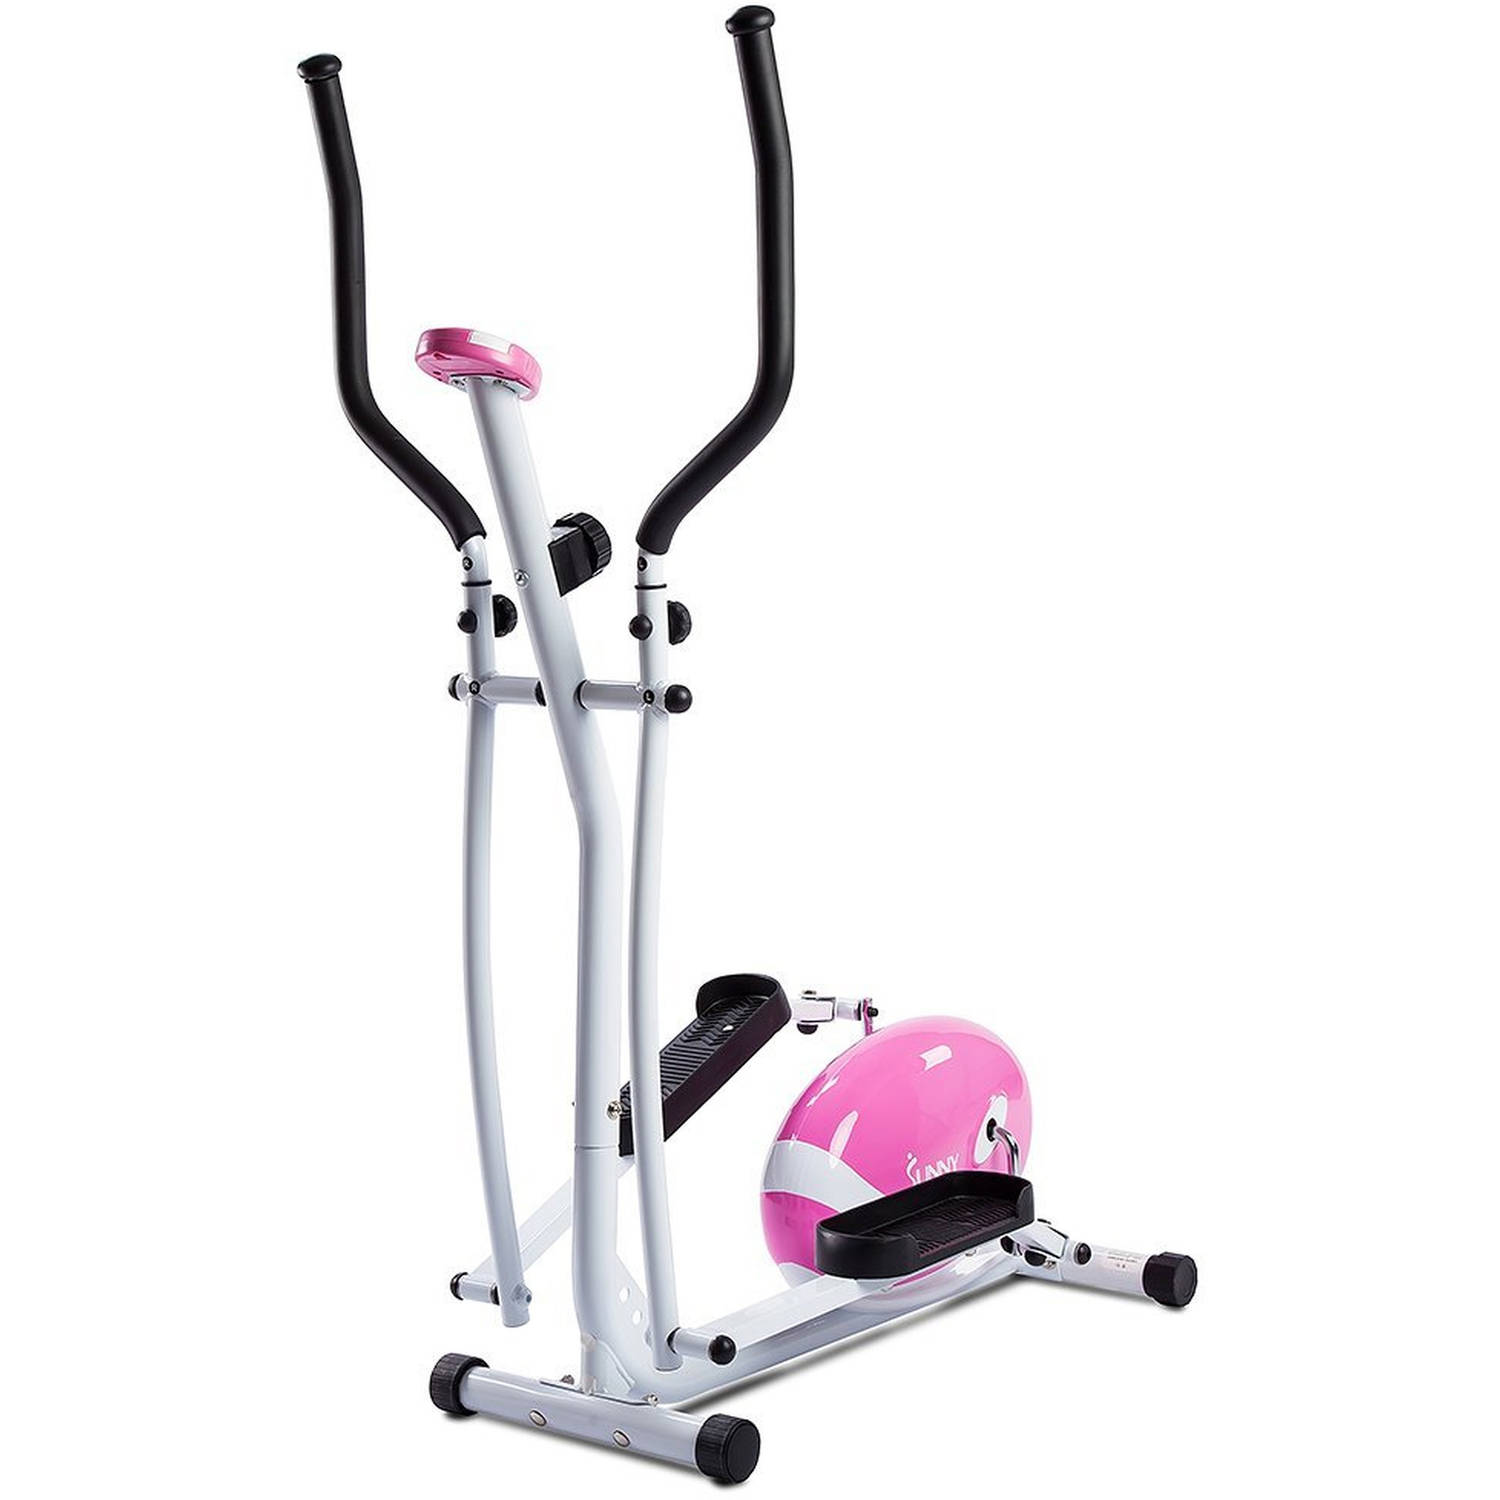 Sunny Health & Fitness Pink Magnetic Elliptical